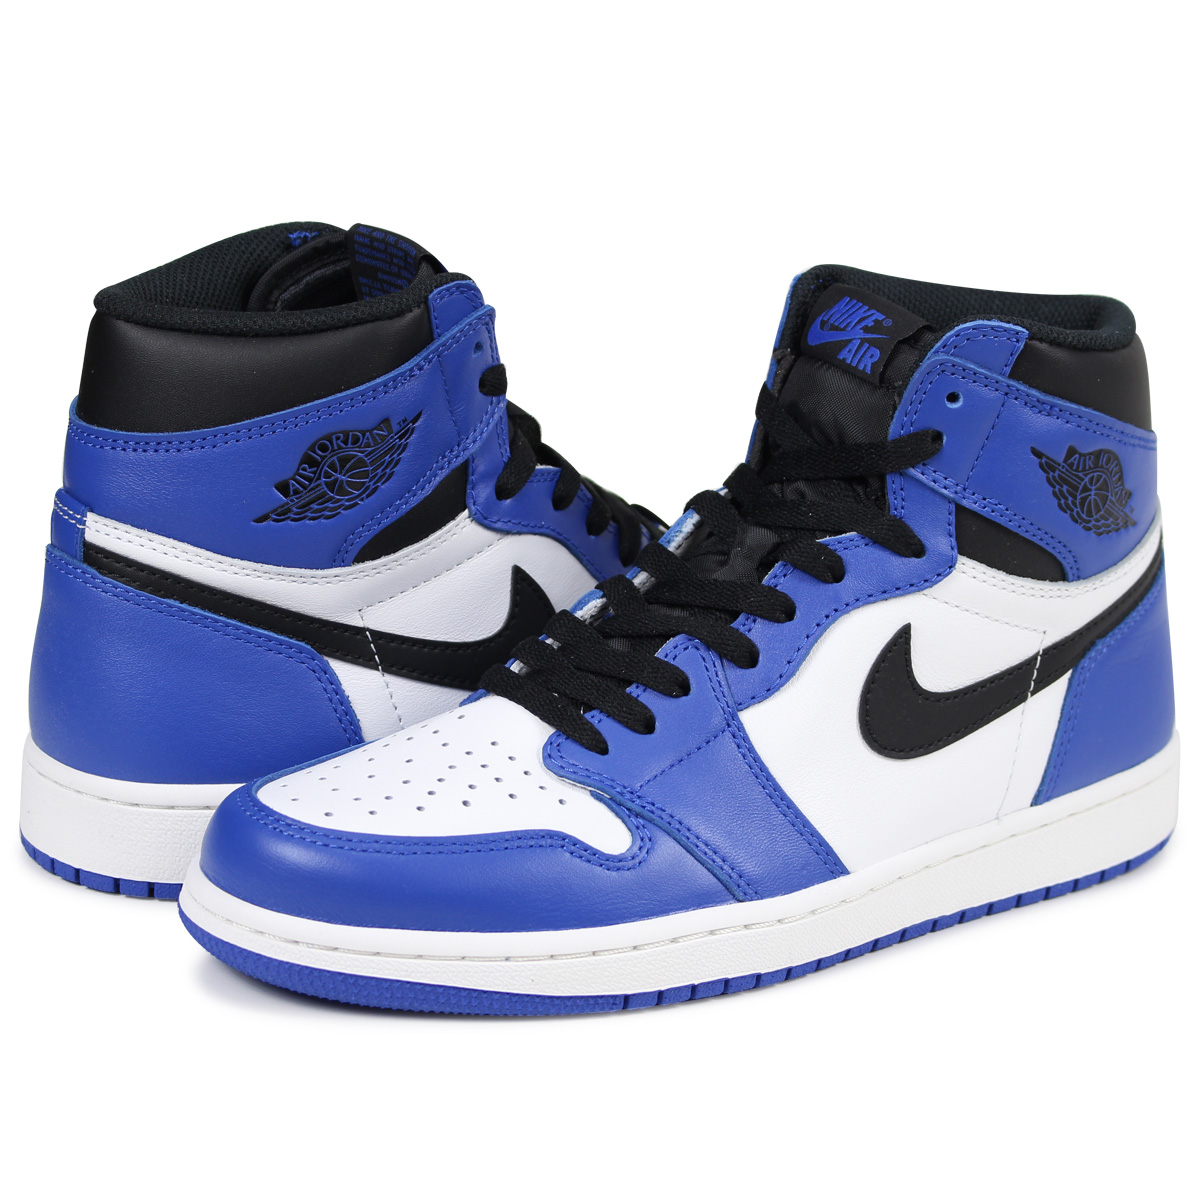 abae828479cbb Whats up Sports  NIKE AIR JORDAN 1 RETRO HIGH OG GAME ROYAL Nike Air Jordan  1 nostalgic high sneakers men 555